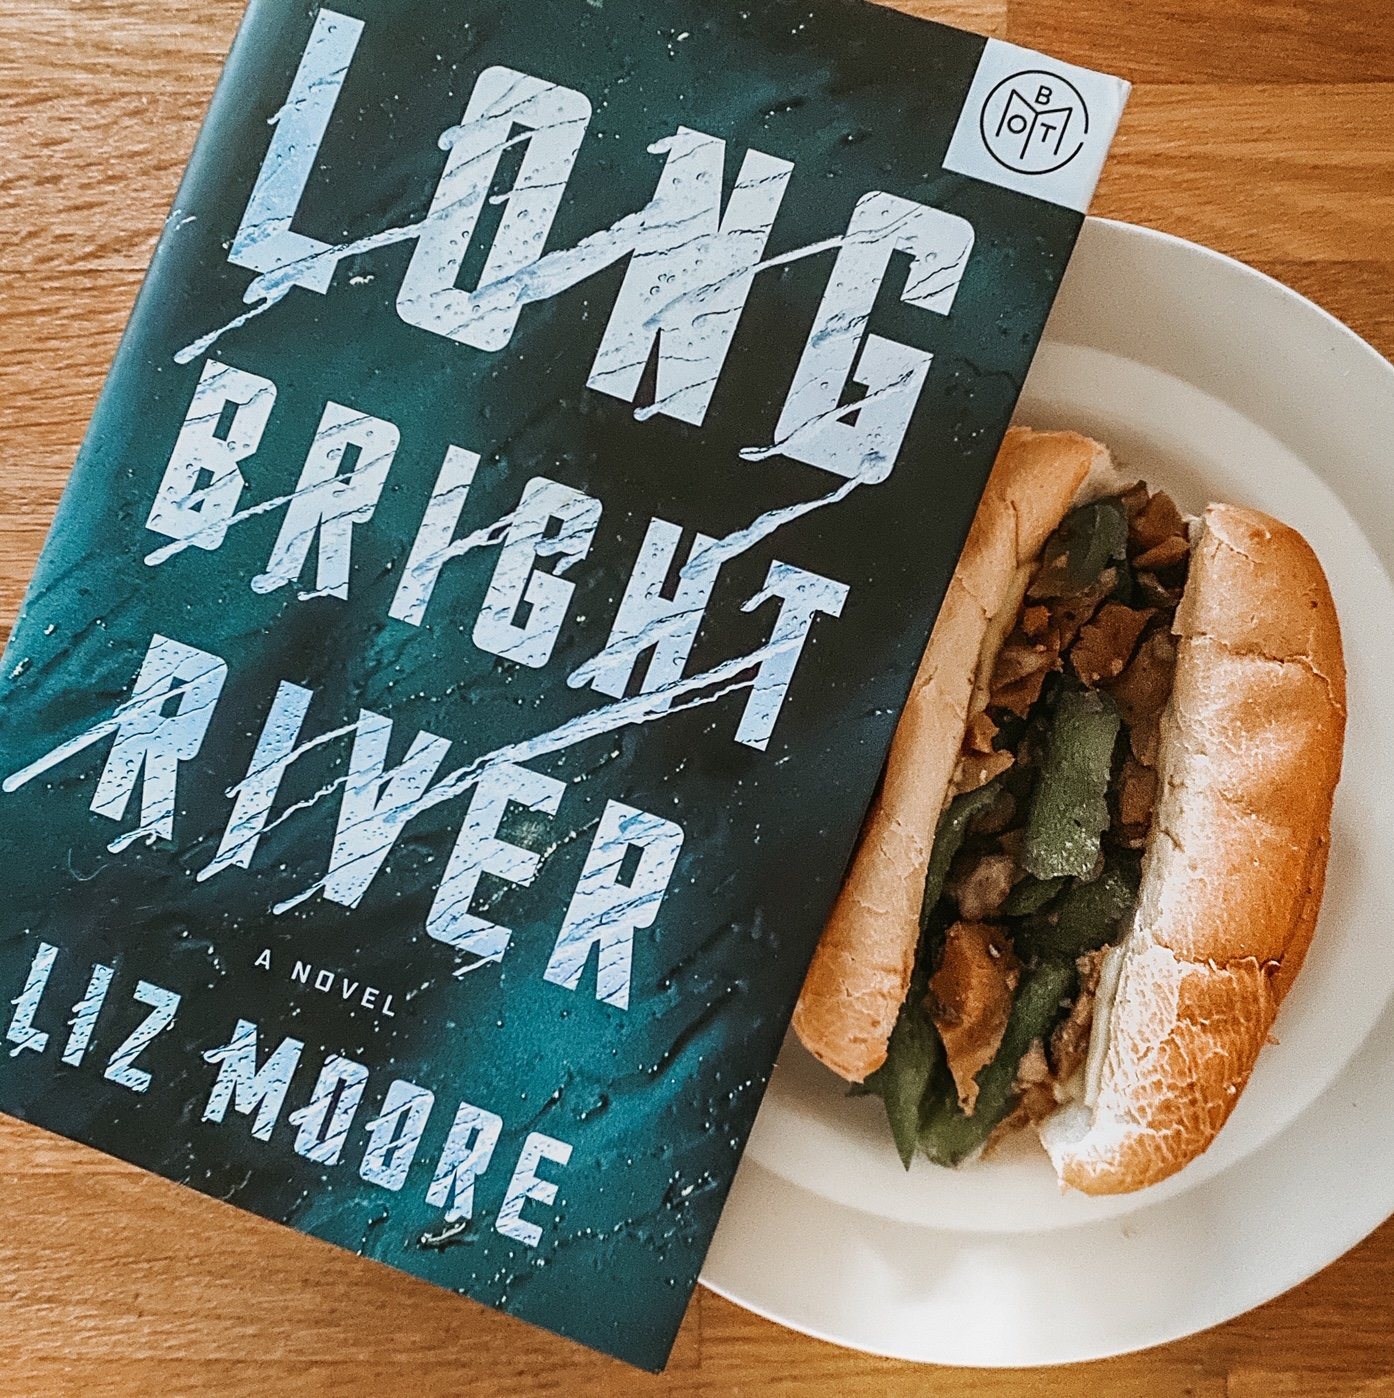 Vegan Philadelphia Cheesesteak with Long Bright River book